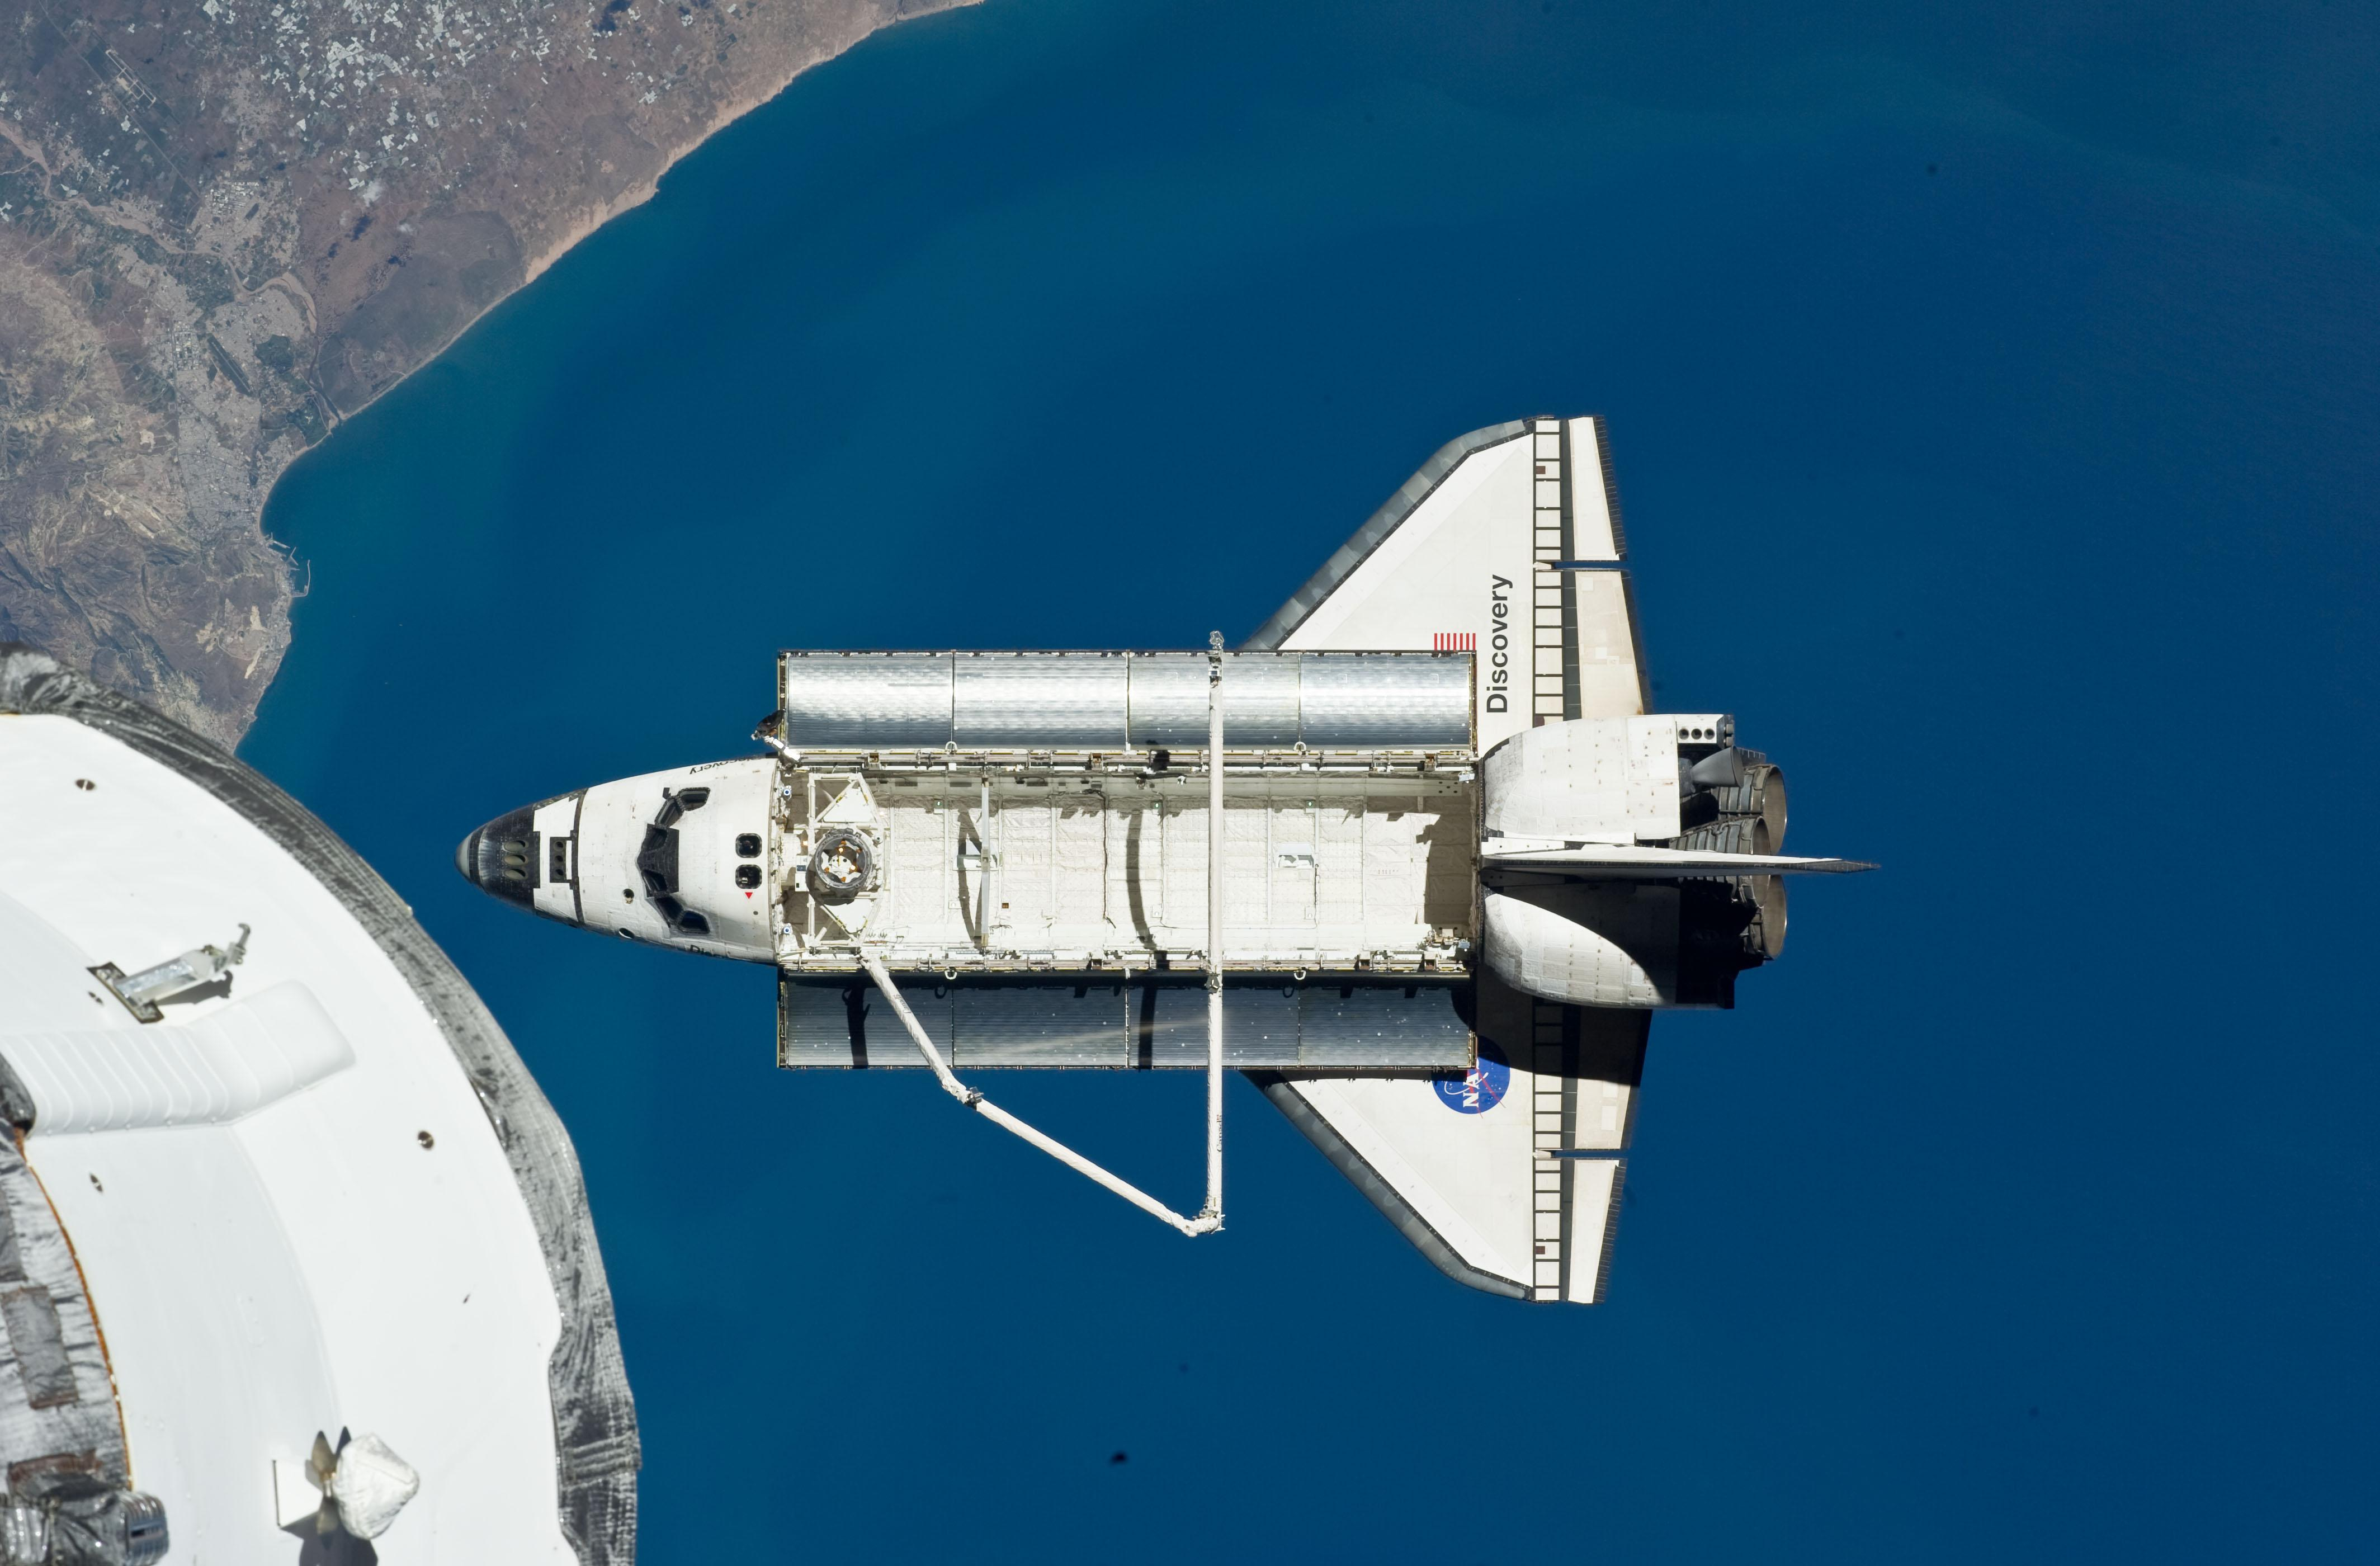 discovery space shuttle - HD4256×2800